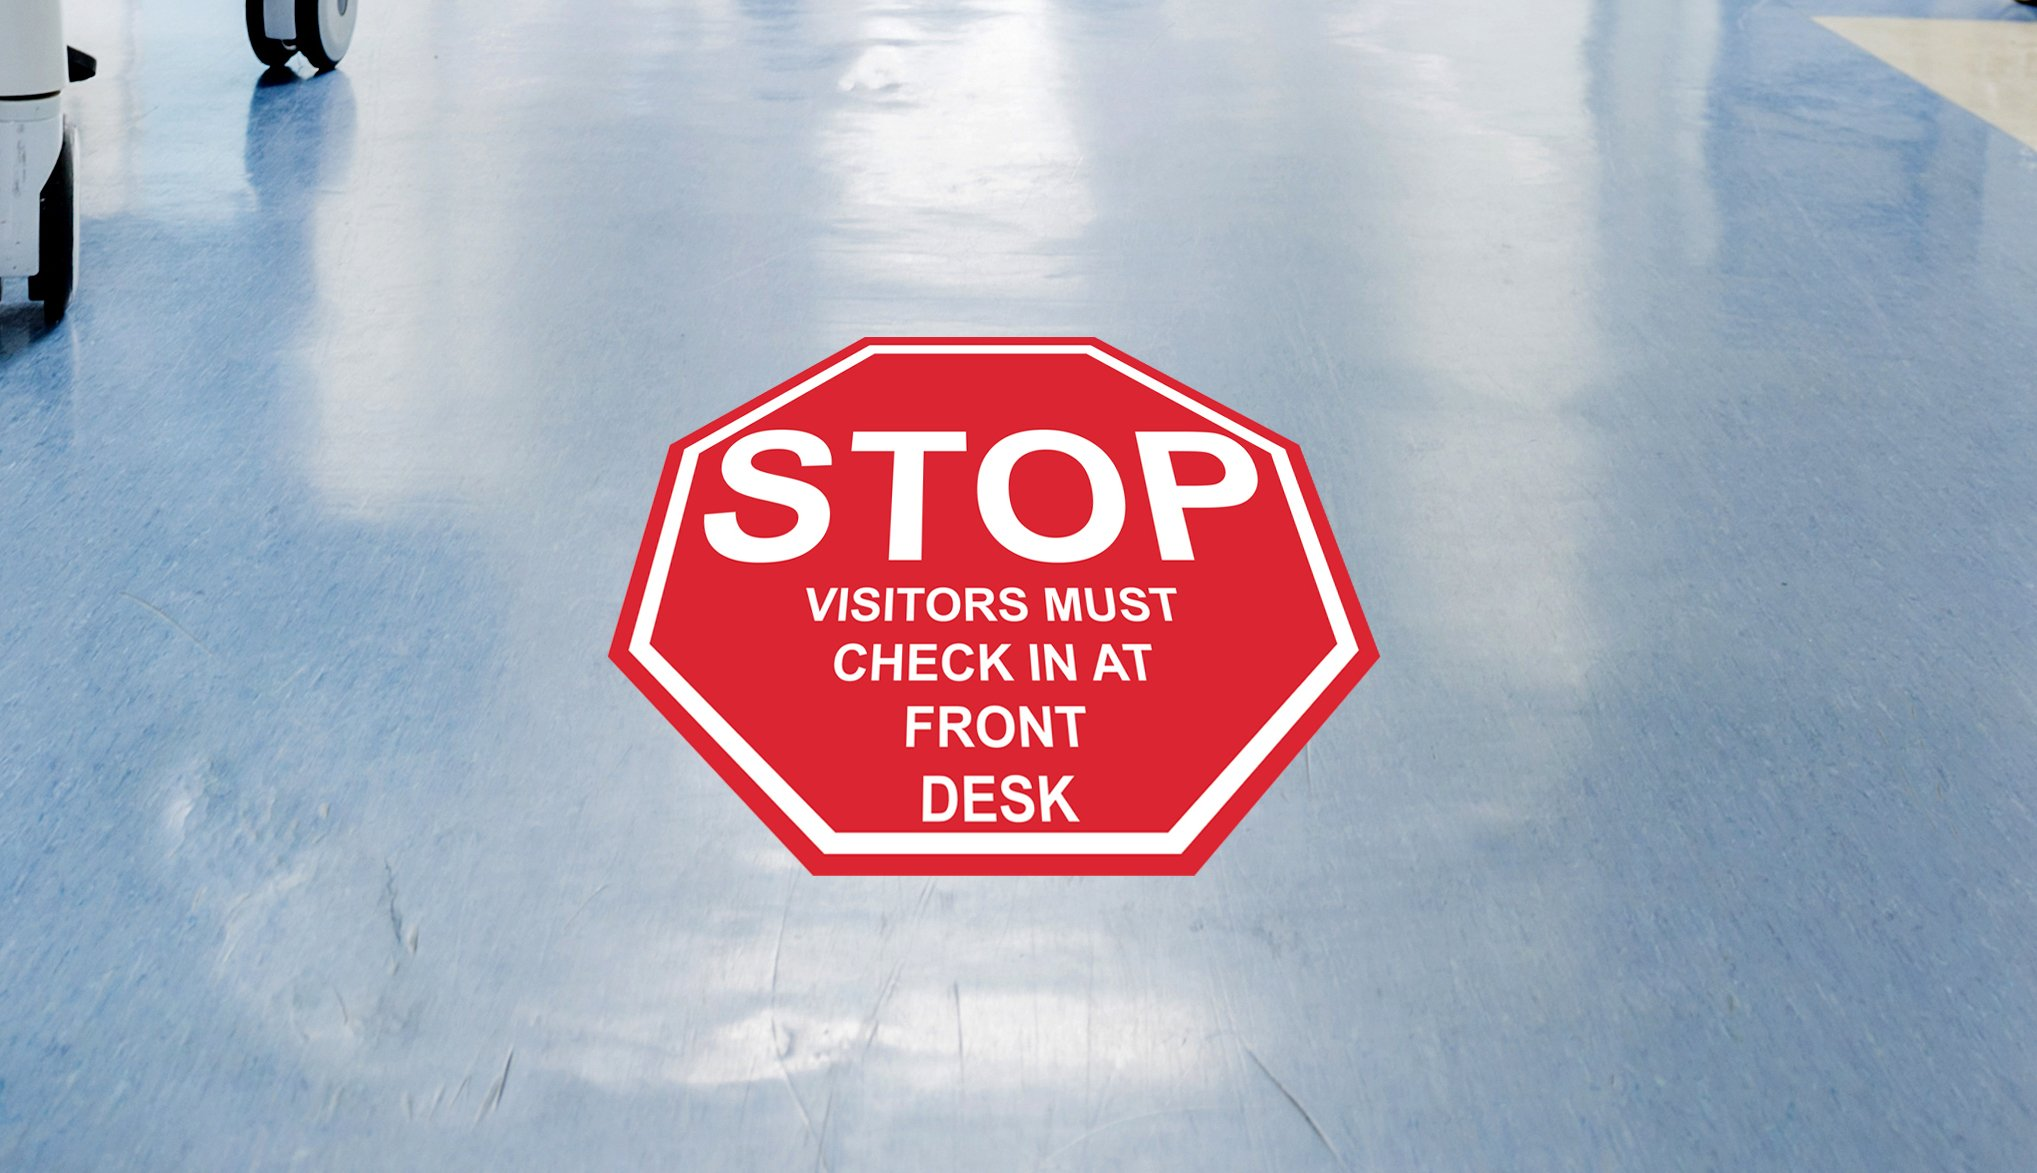 ''Stop Visitors Must Check in at Front Desk'' - 16in Durable Floor Sign by Graphical Warehouse Vibrant Colors - Safety and Security Signage. Red Octagon.